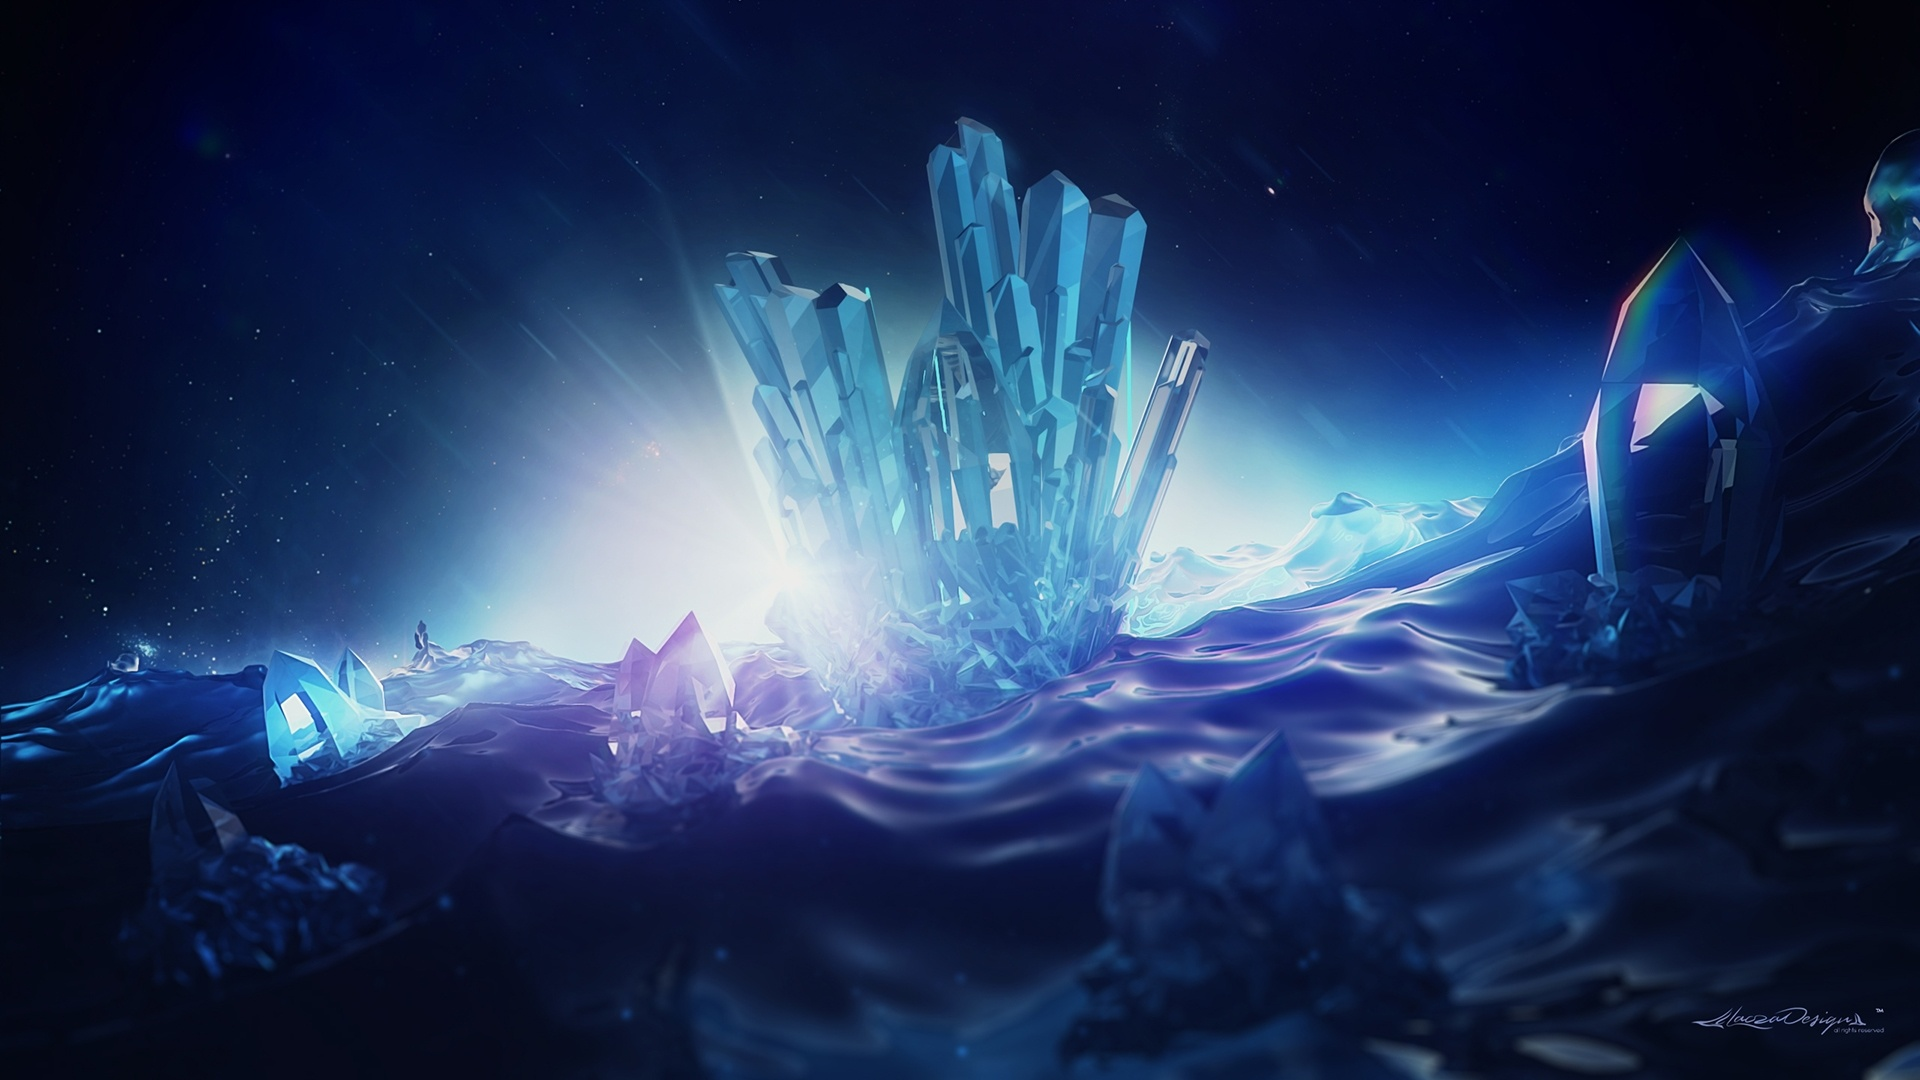 Crystals wallpaper for pc